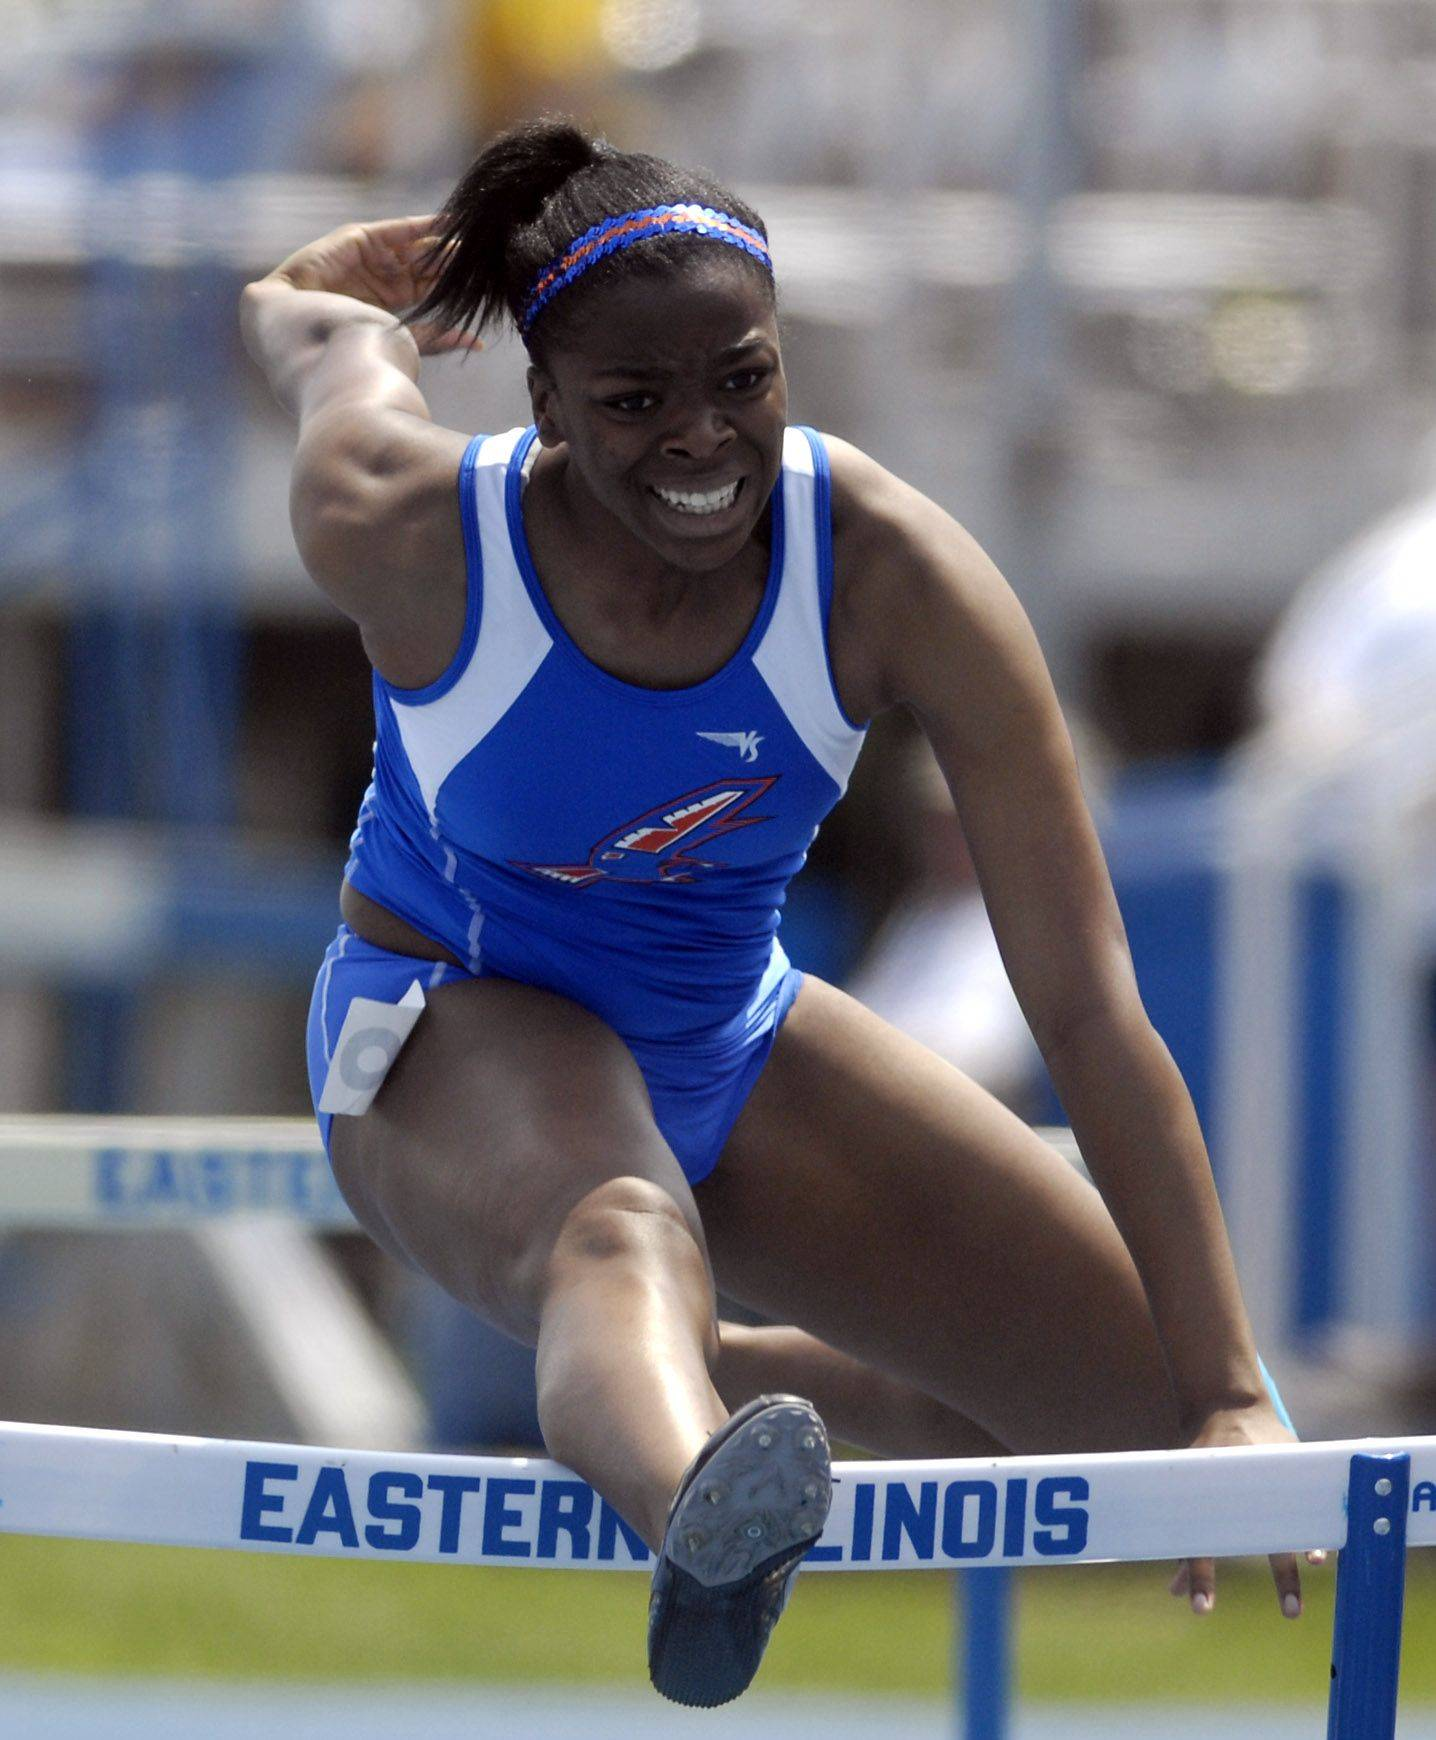 Hoffman Estates High School's Brittany Love hits a hurdle and goes down in the 100-meter high hurdles during Friday's preliminaries of the IHSA girls state track finals in Charleston.